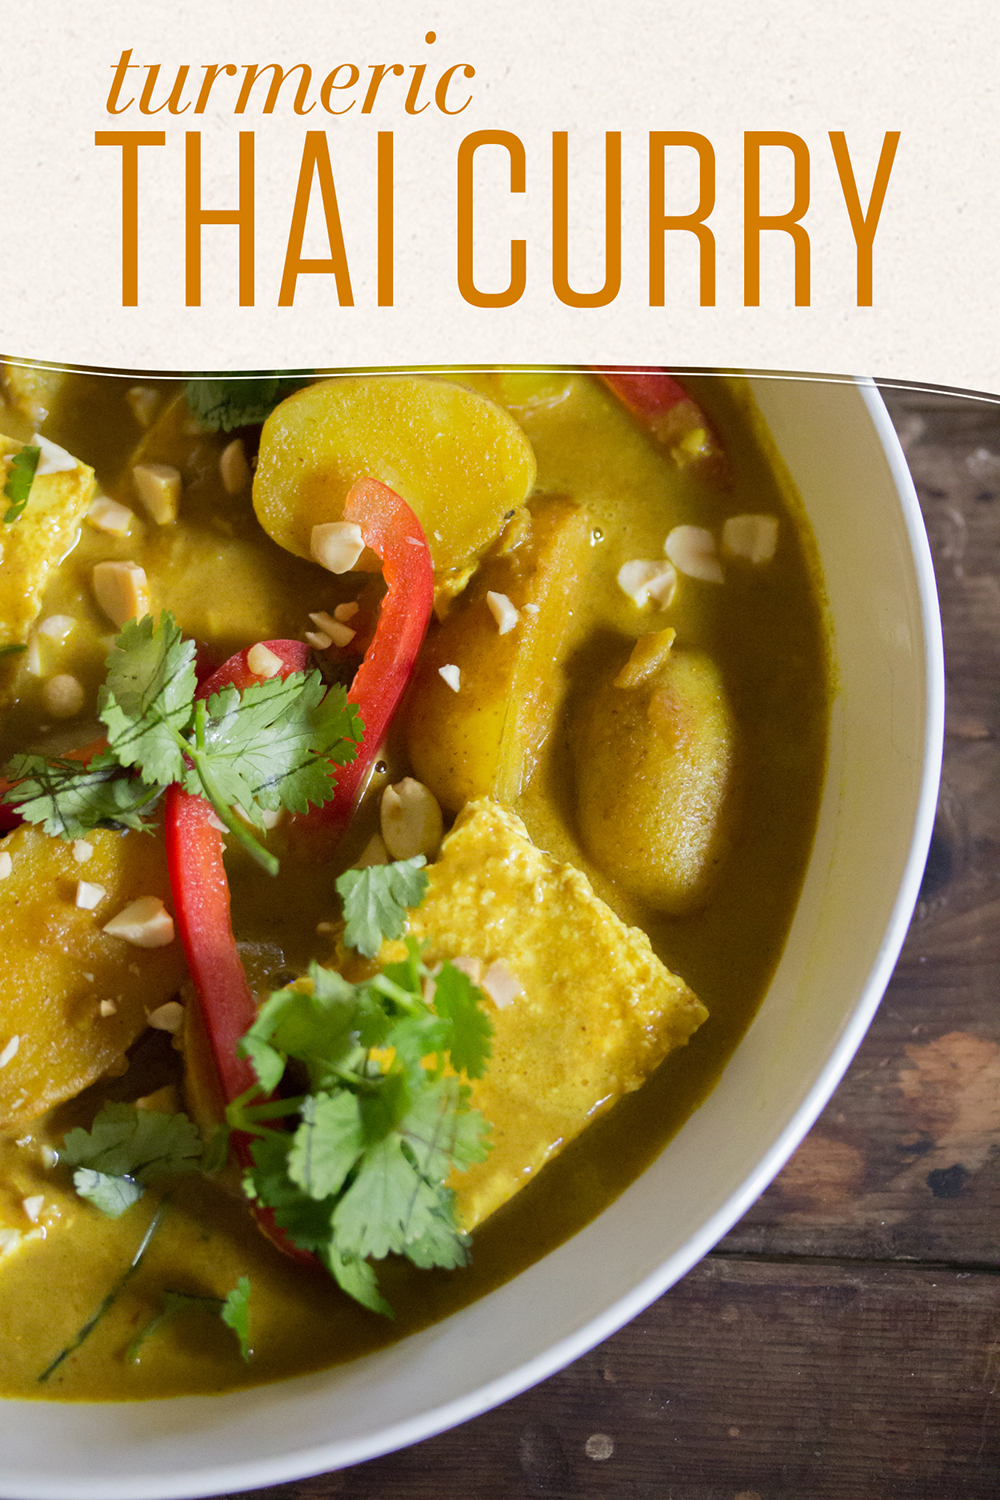 The secret to this vegan Turmeric Thai Curry is Numi's Turmeric Chai Golden Latte powder, an easy way to add spice and robust flavor.